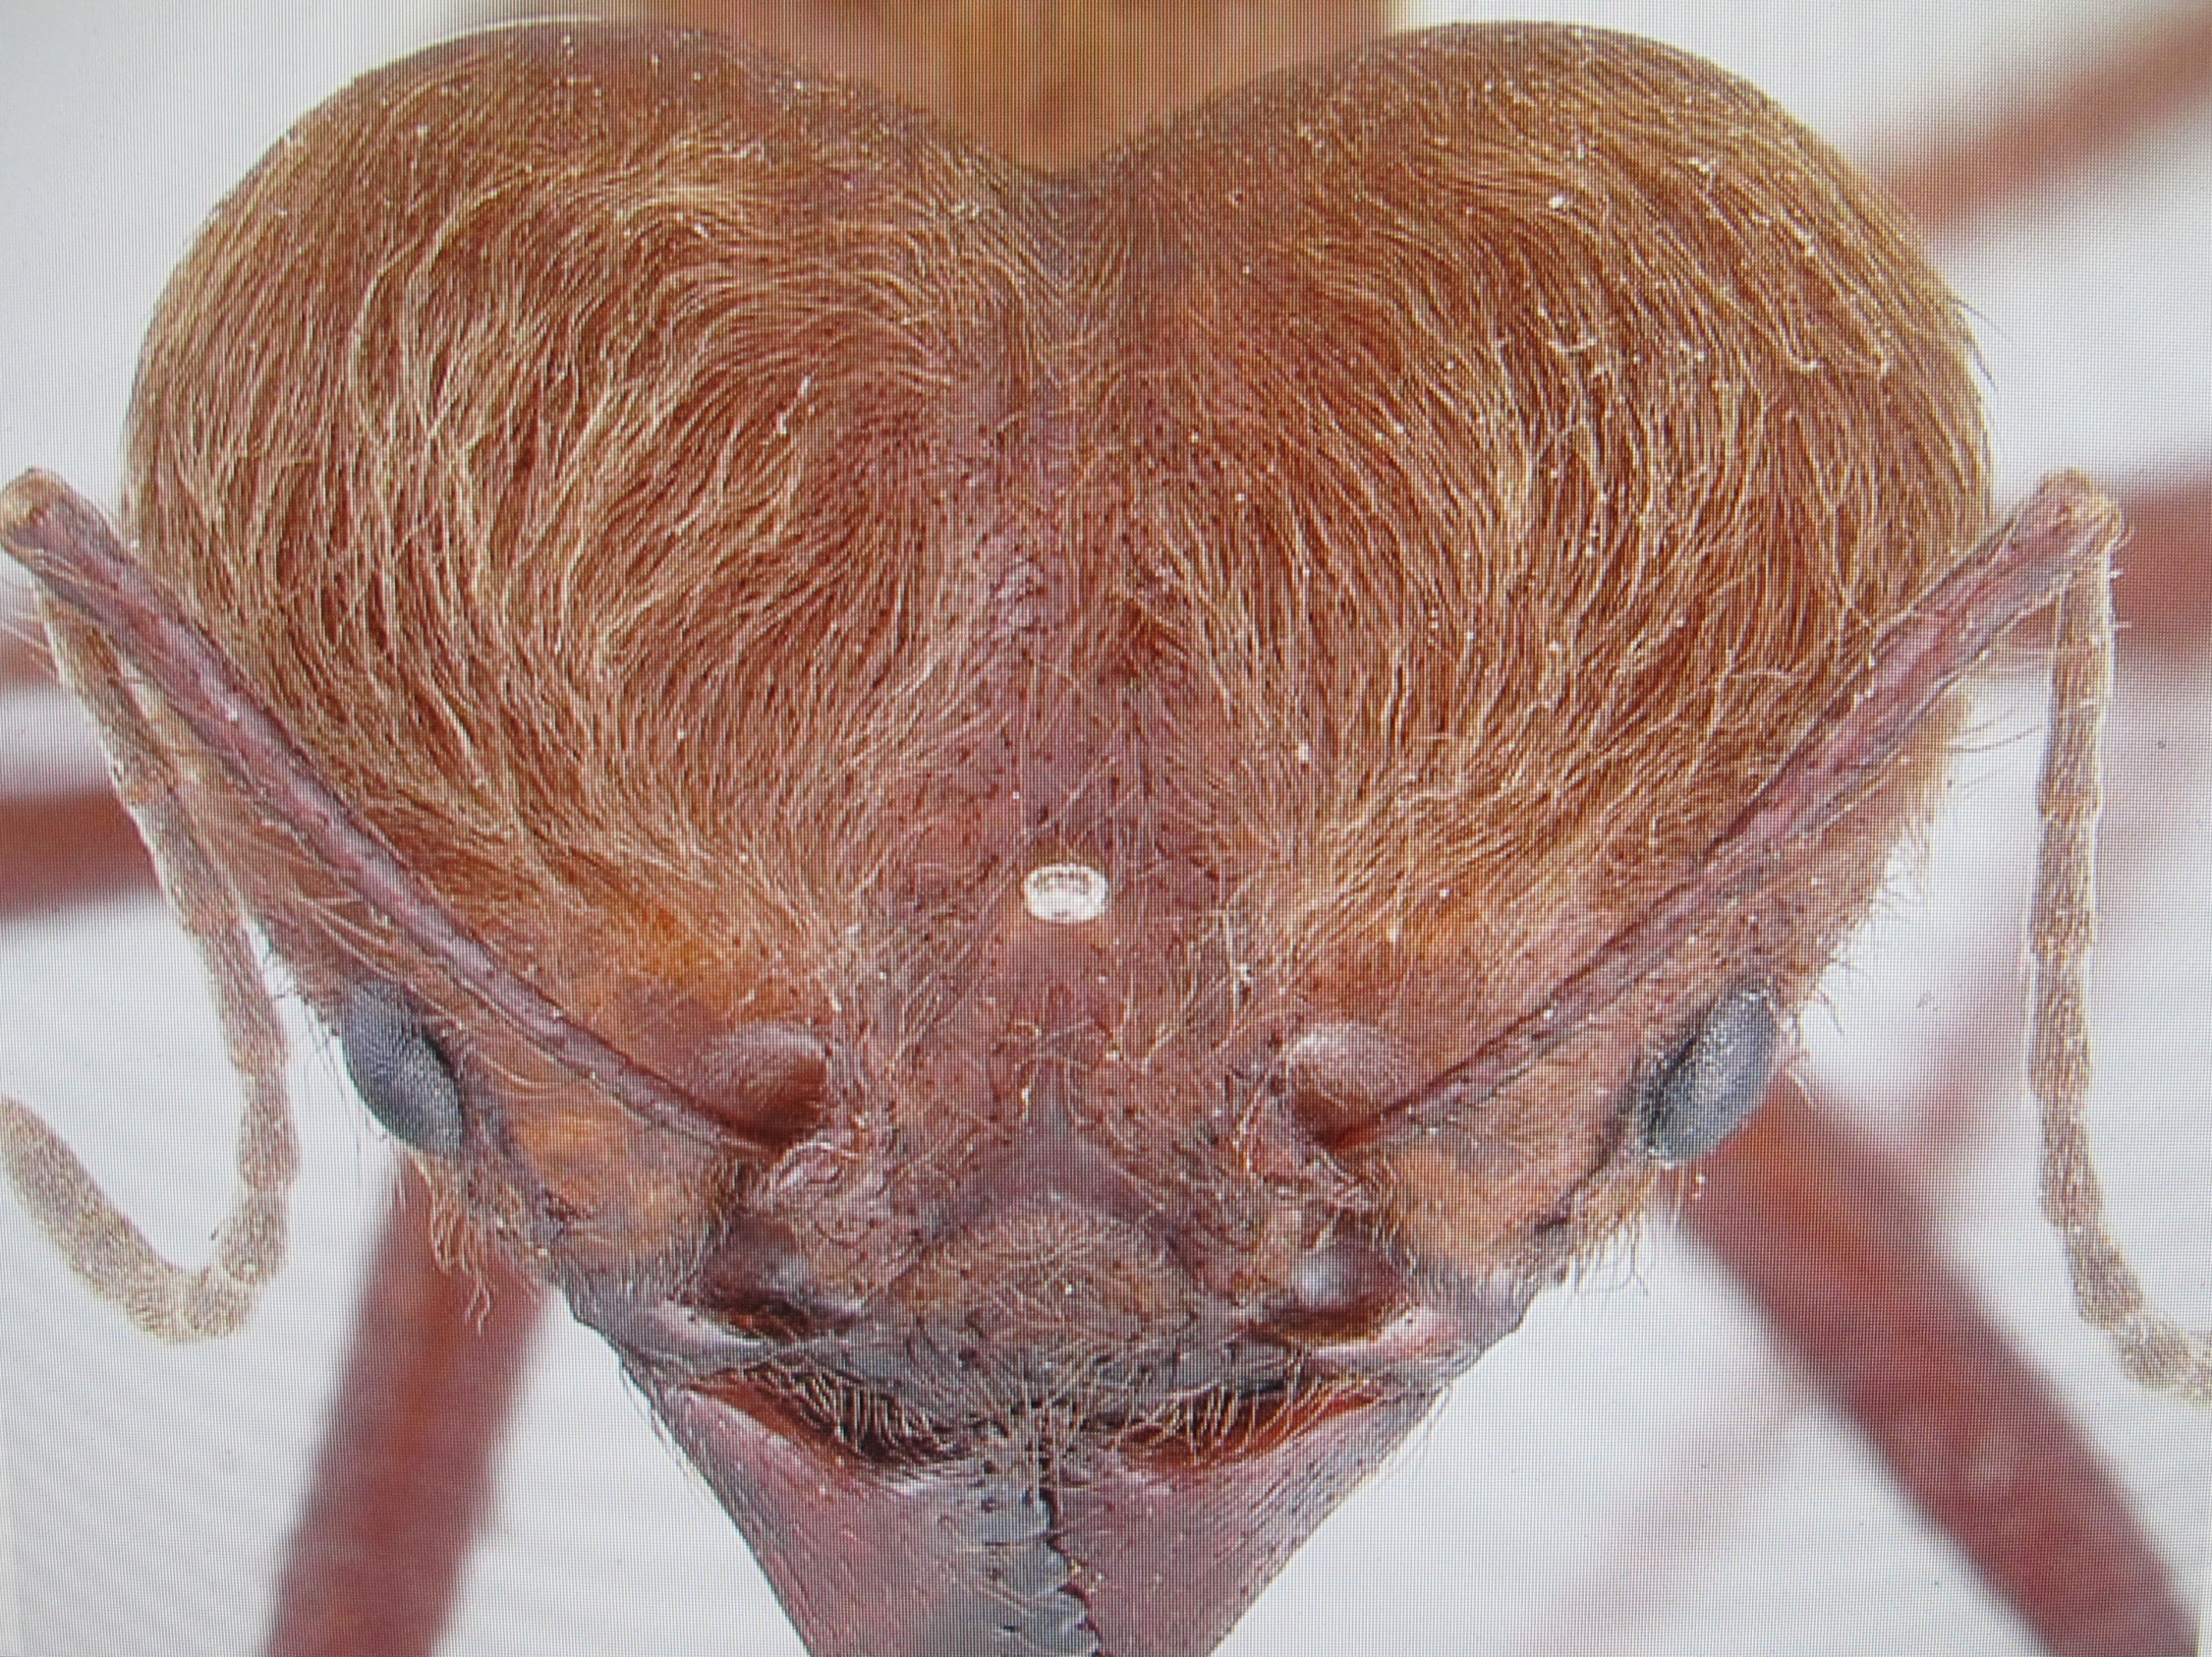 This barber's-eye view of a Costa Rican leaf-cutter ant shows the sort of detail visible in the California Academy of Sciences photo series..